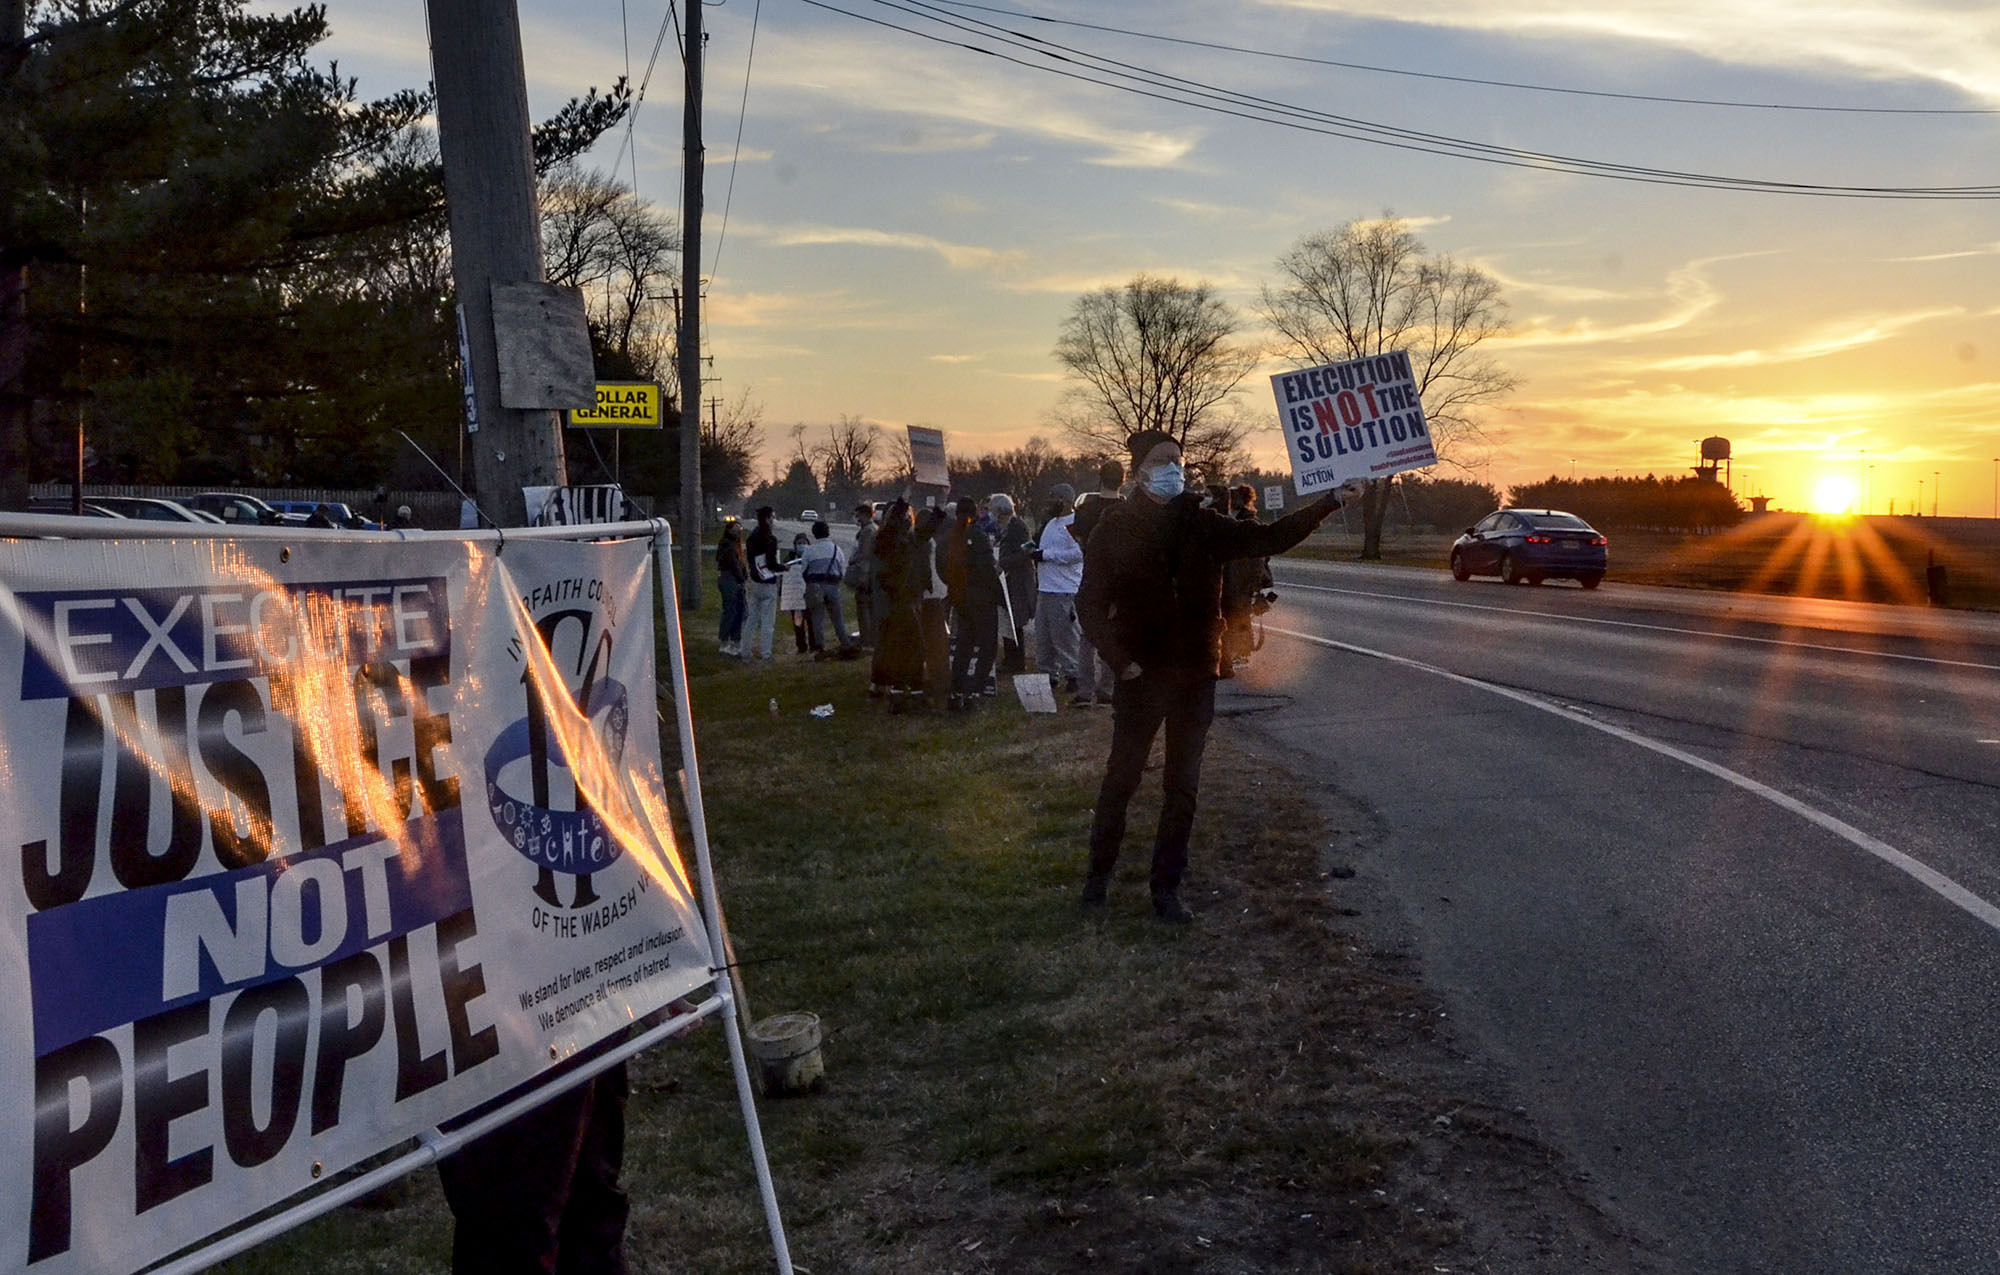 Protesters line Prairieton Road across from the Federal Death Chamber in Terre Haute, Ind., during a protest against the execution of Brandon Bernard on Thursday evening, Dec. 10, 2020. (Austen Leake/The Tribune-Star via AP)